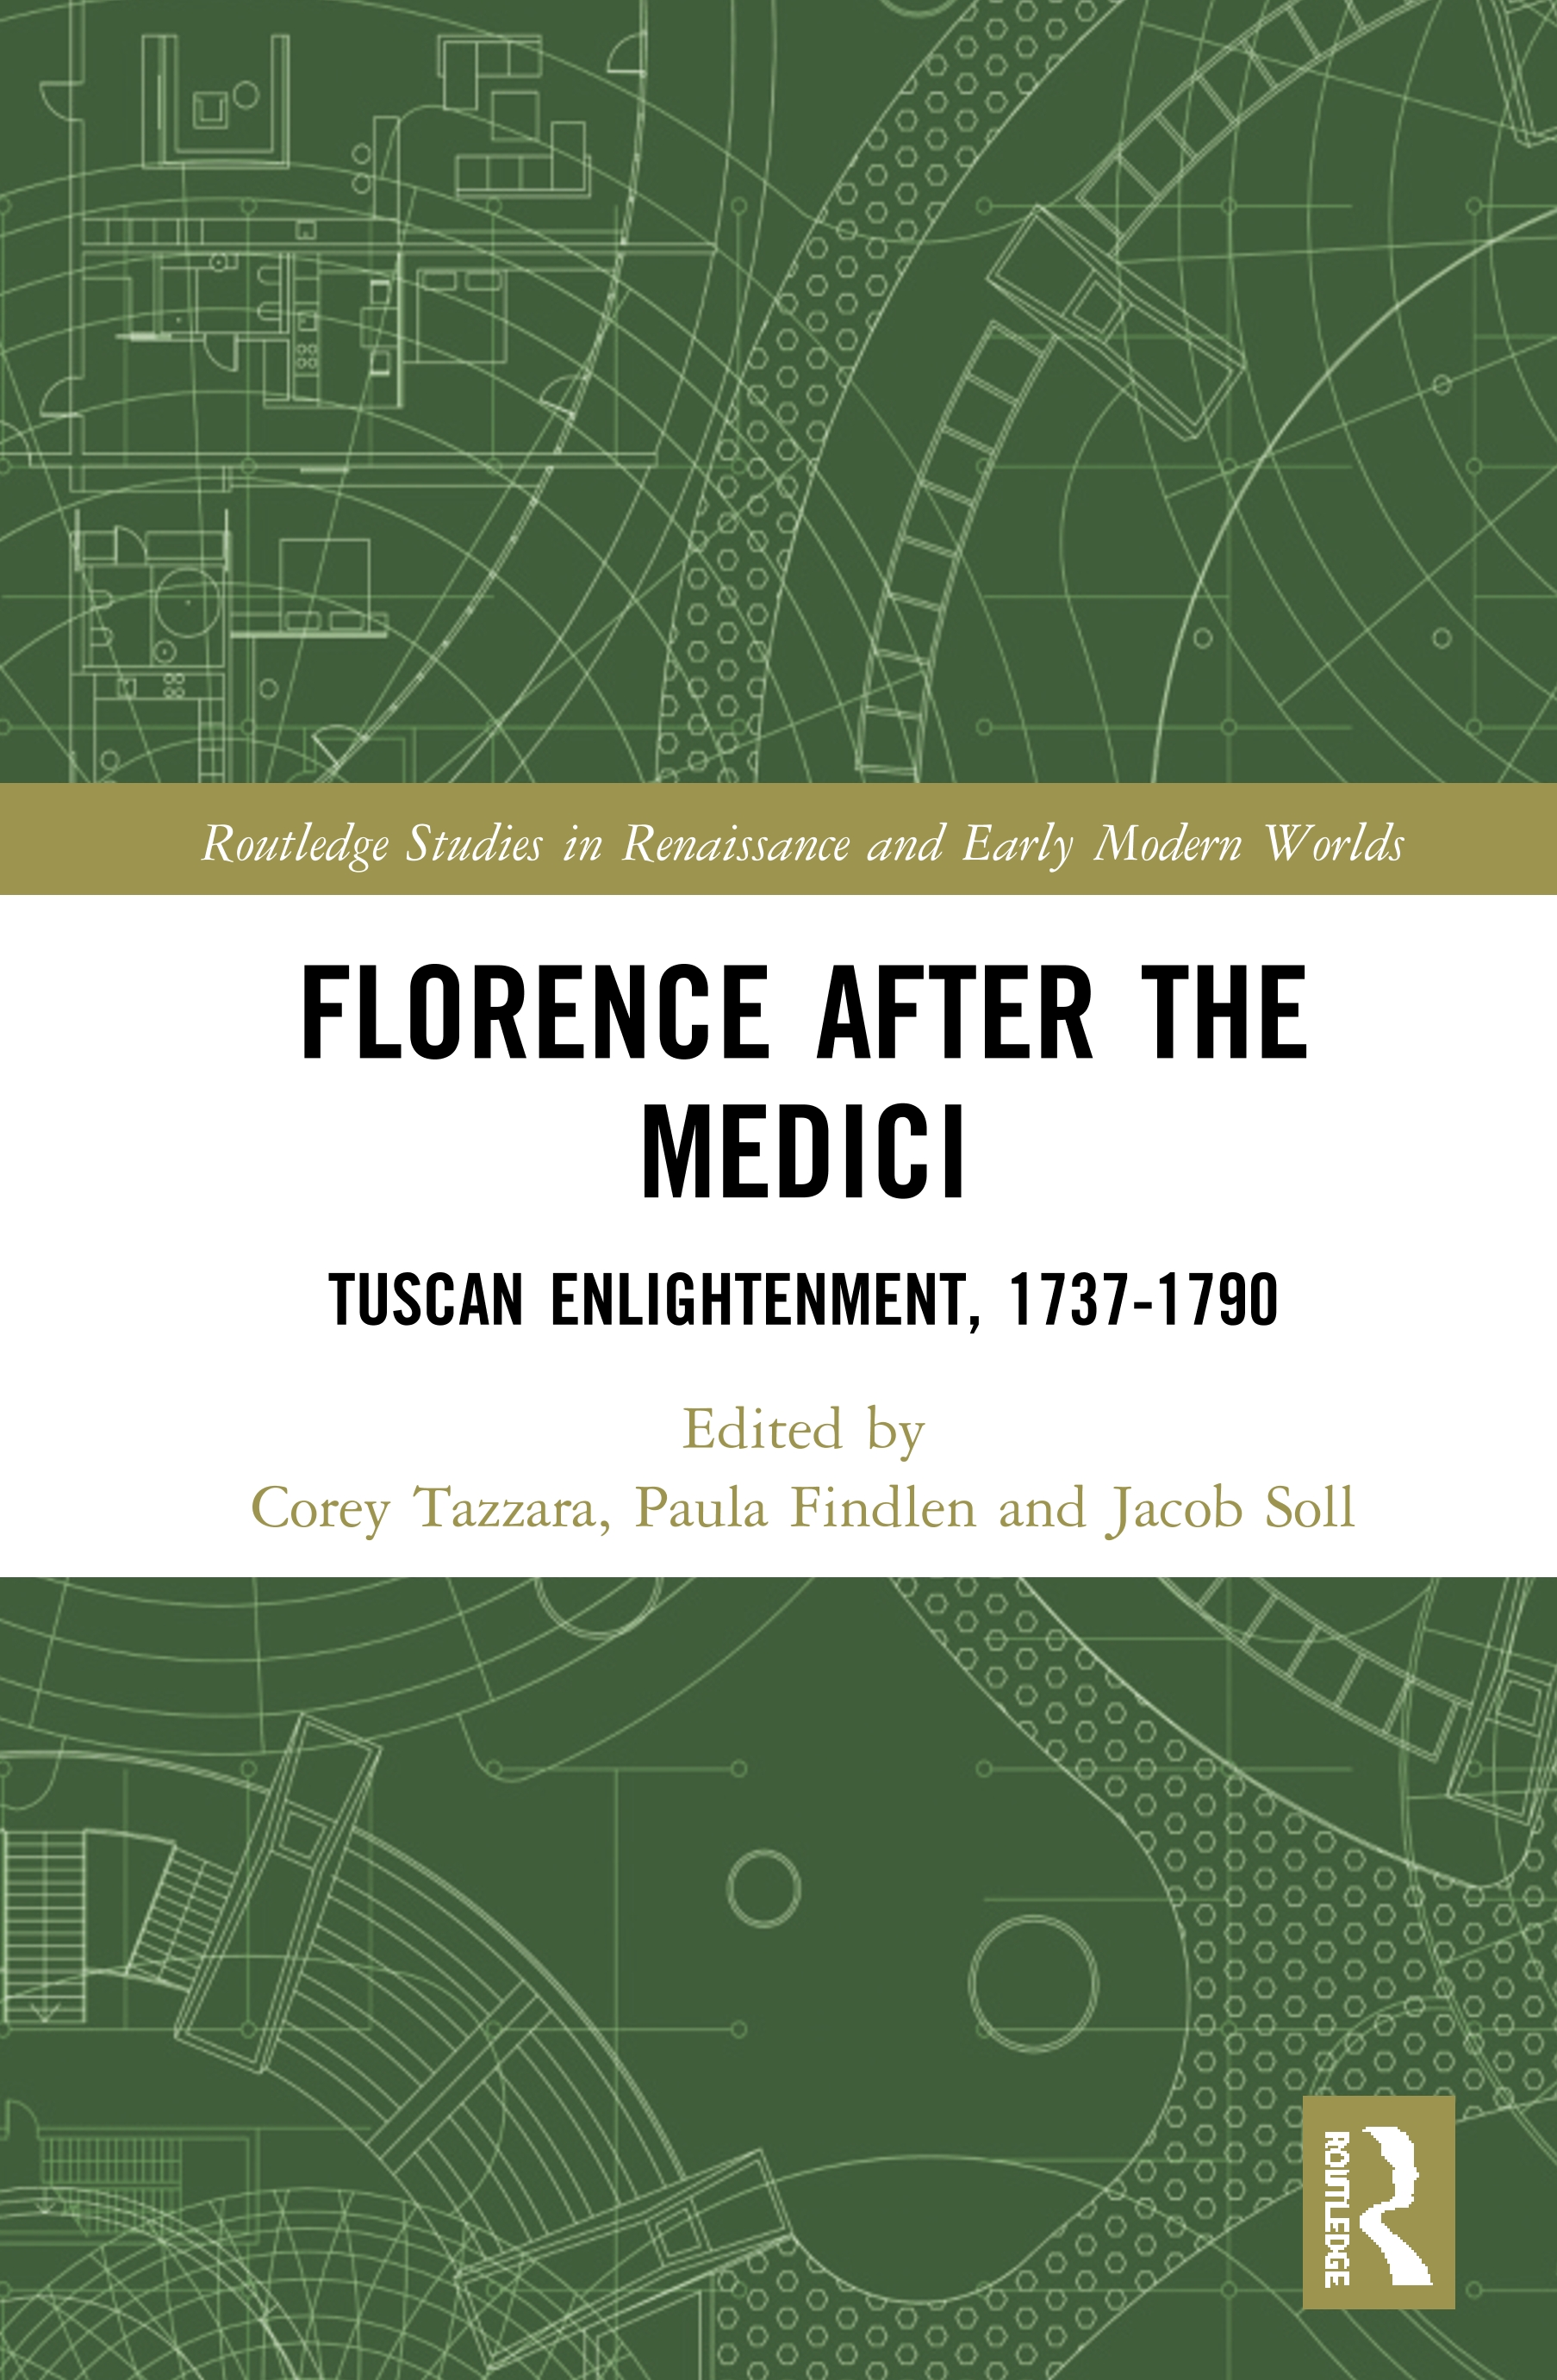 Florence After the Medici: Tuscan Enlightenment, 1737-1790 book cover